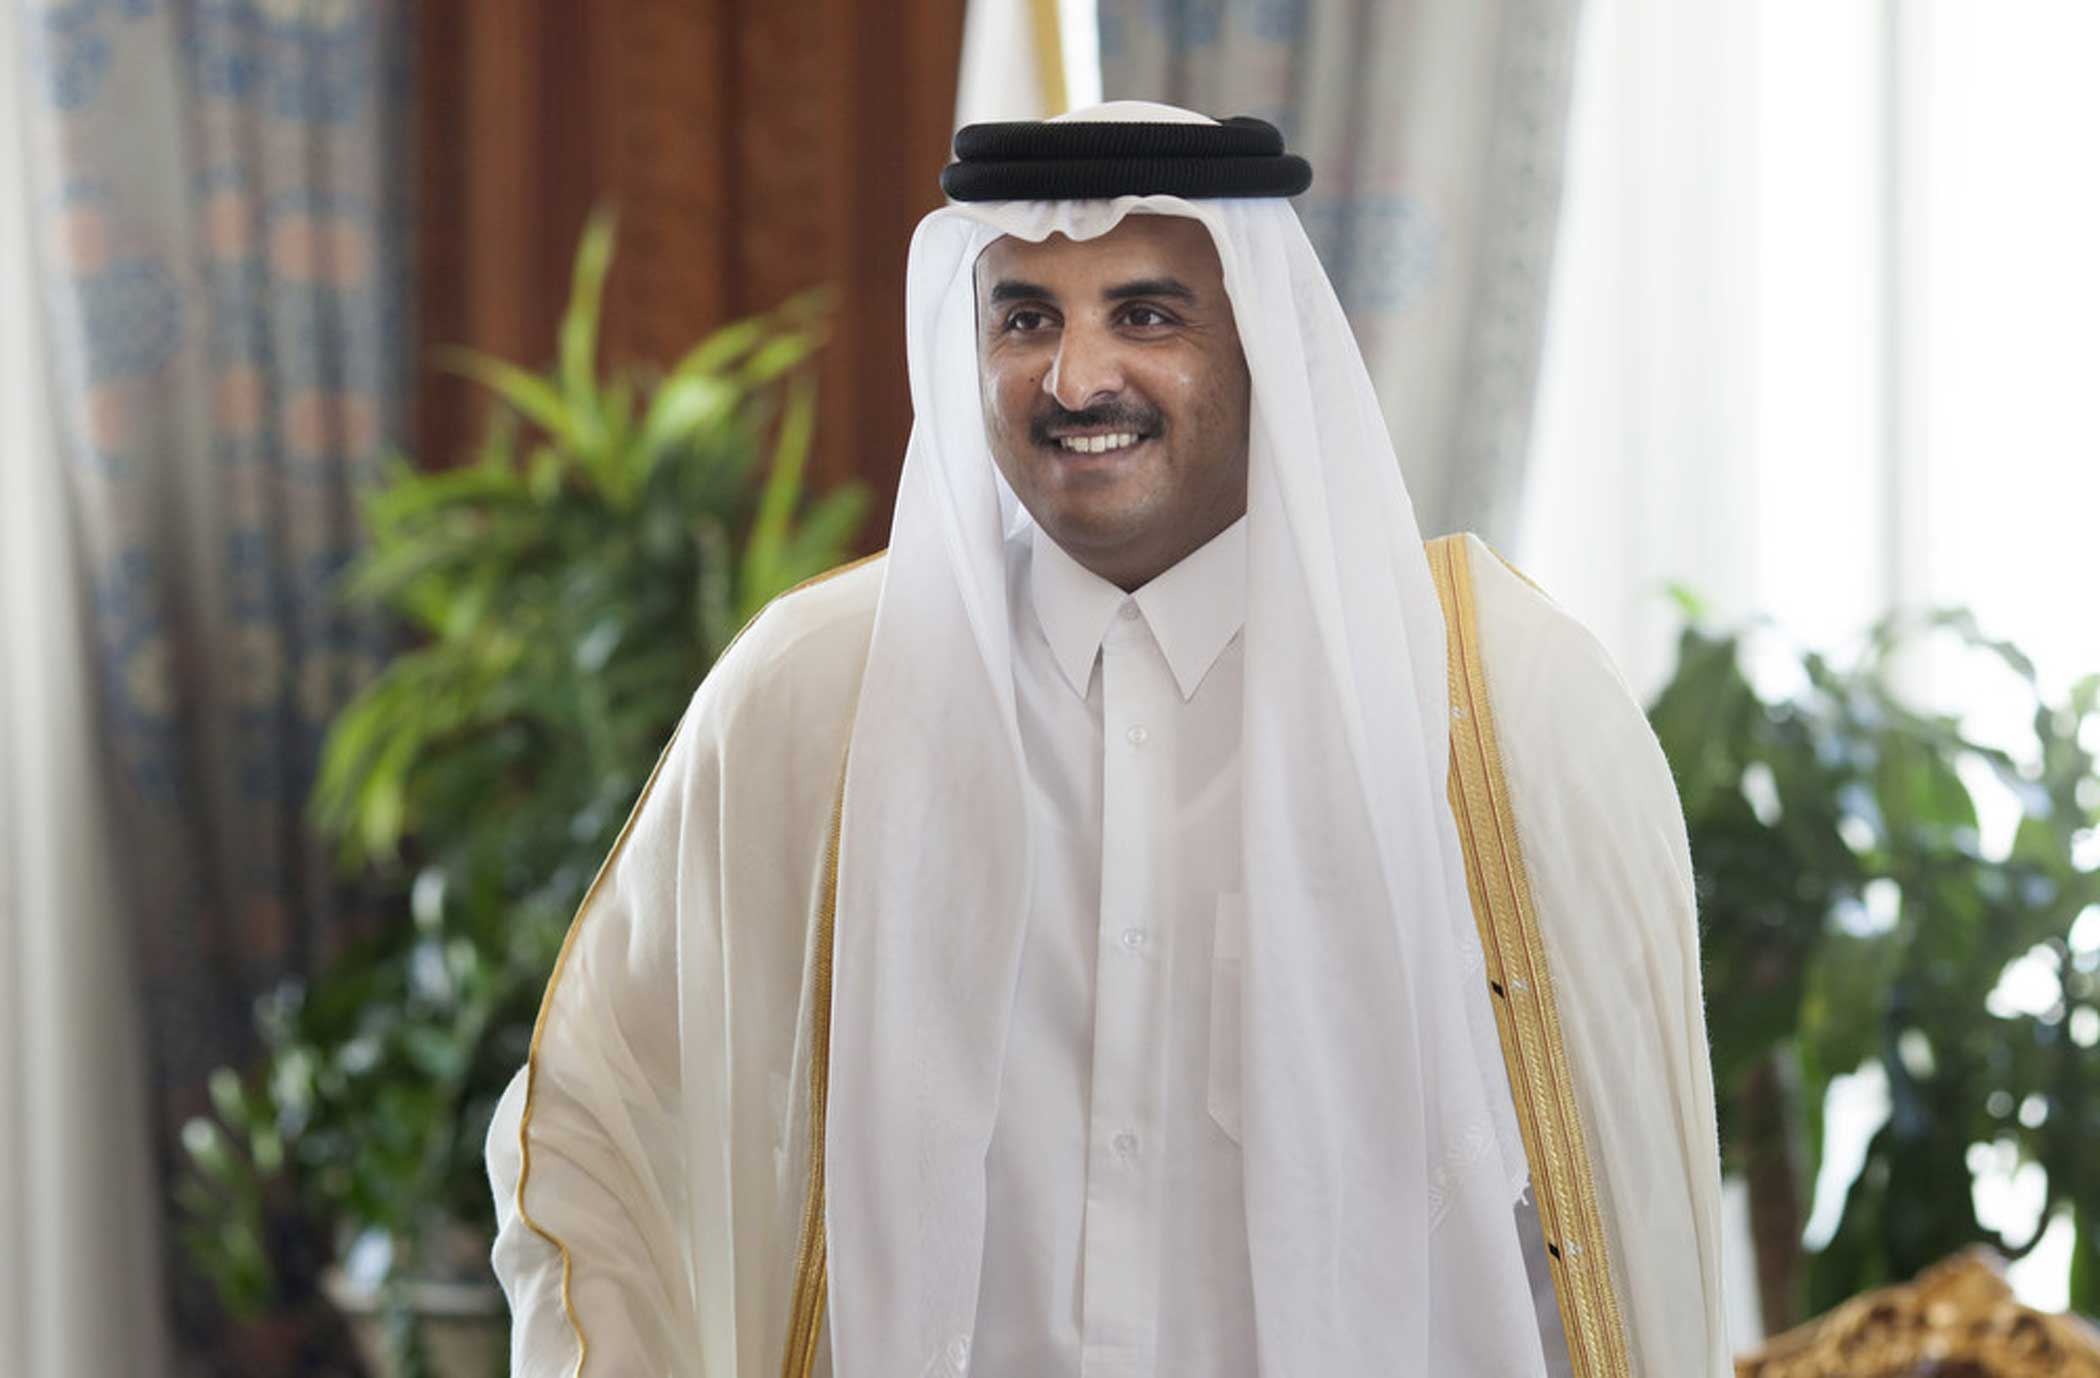 Sheikh Tamim bin Hamad bin Khalifa Al Thani, Emir of the State of Qatar on June 01, 2014, in Doha, Qatar.